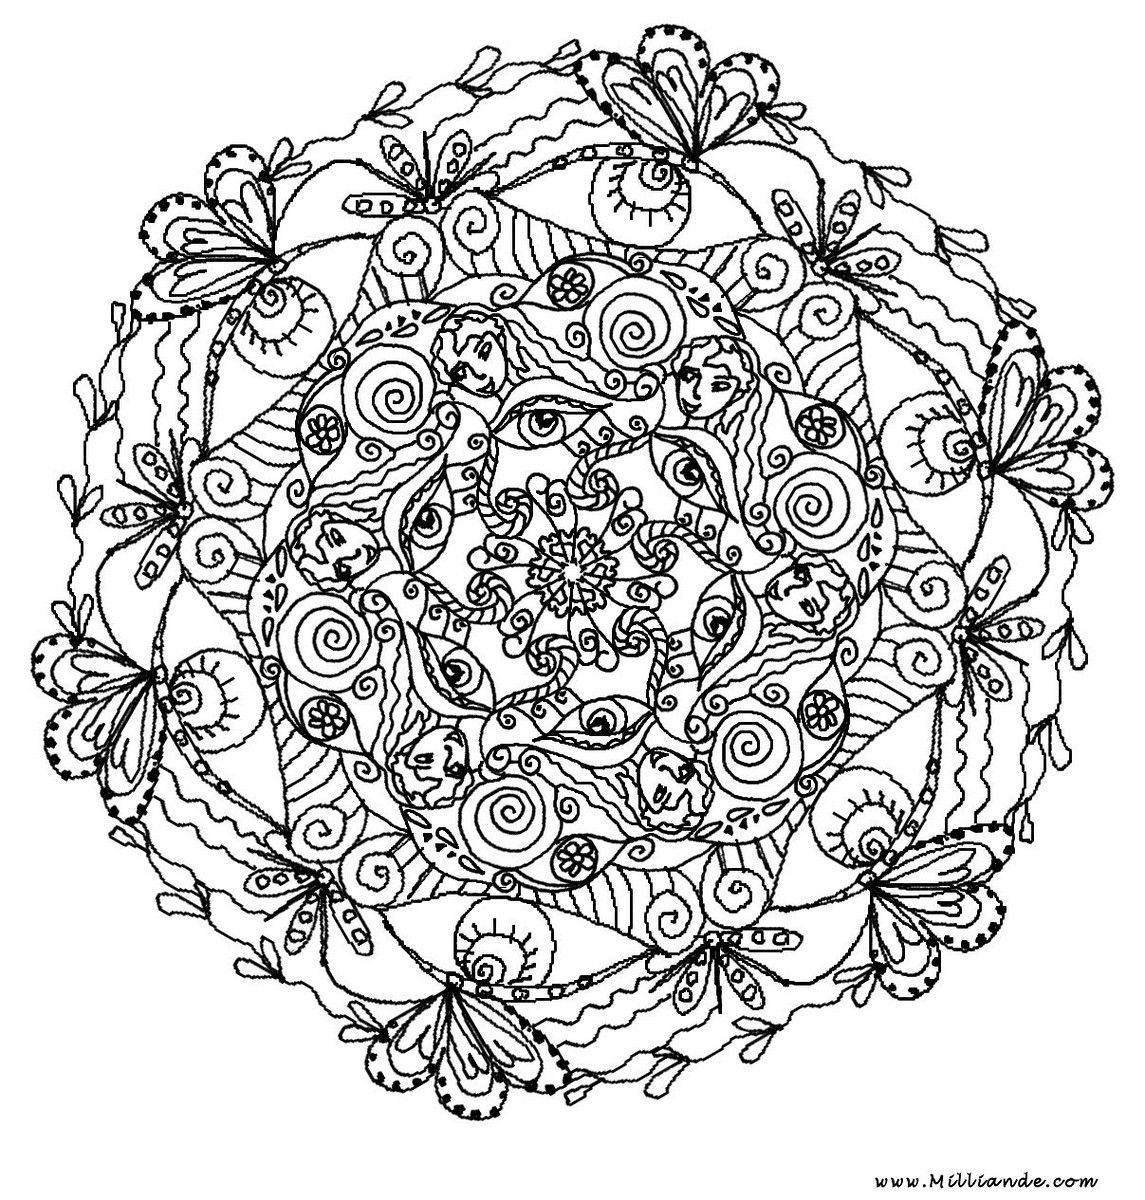 Coloring pages to print designs - Center Yourself With Mandalas Coloring Pages